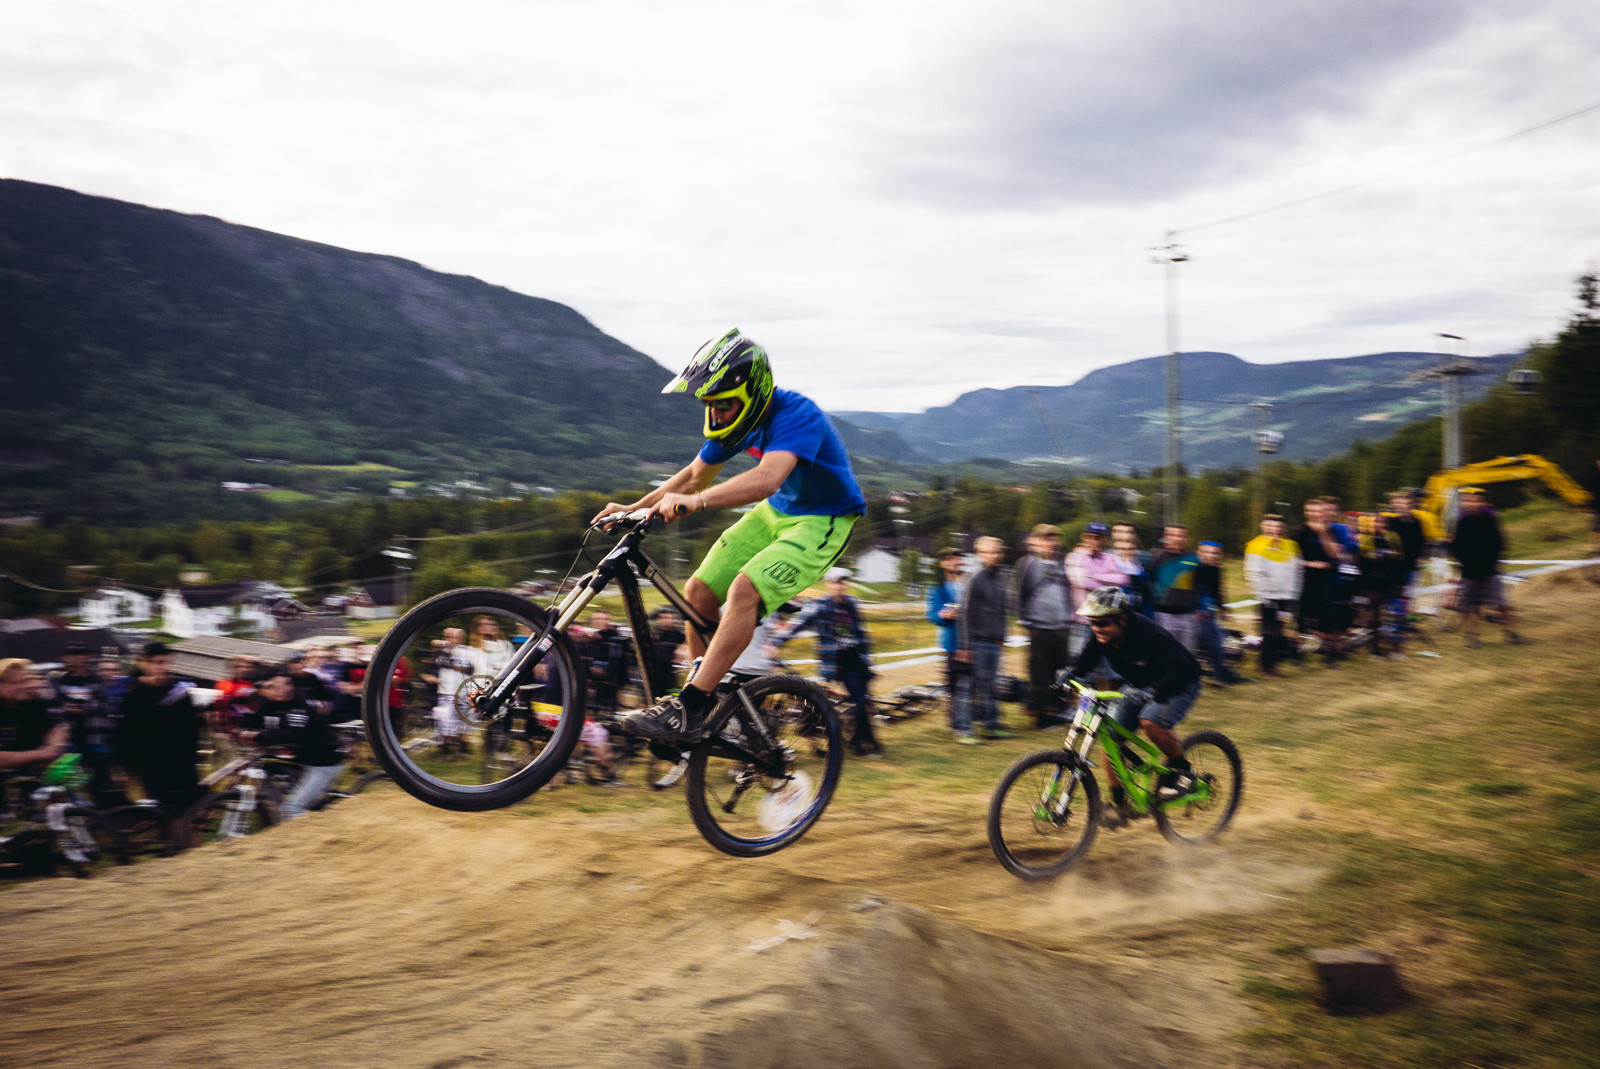 Pro Media vs Pro Racer, Industry World Champs - Has-Beens vs. Wannabes! Industry World Champs Race at Hafjell - Mountain Biking Pictures - Vital MTB